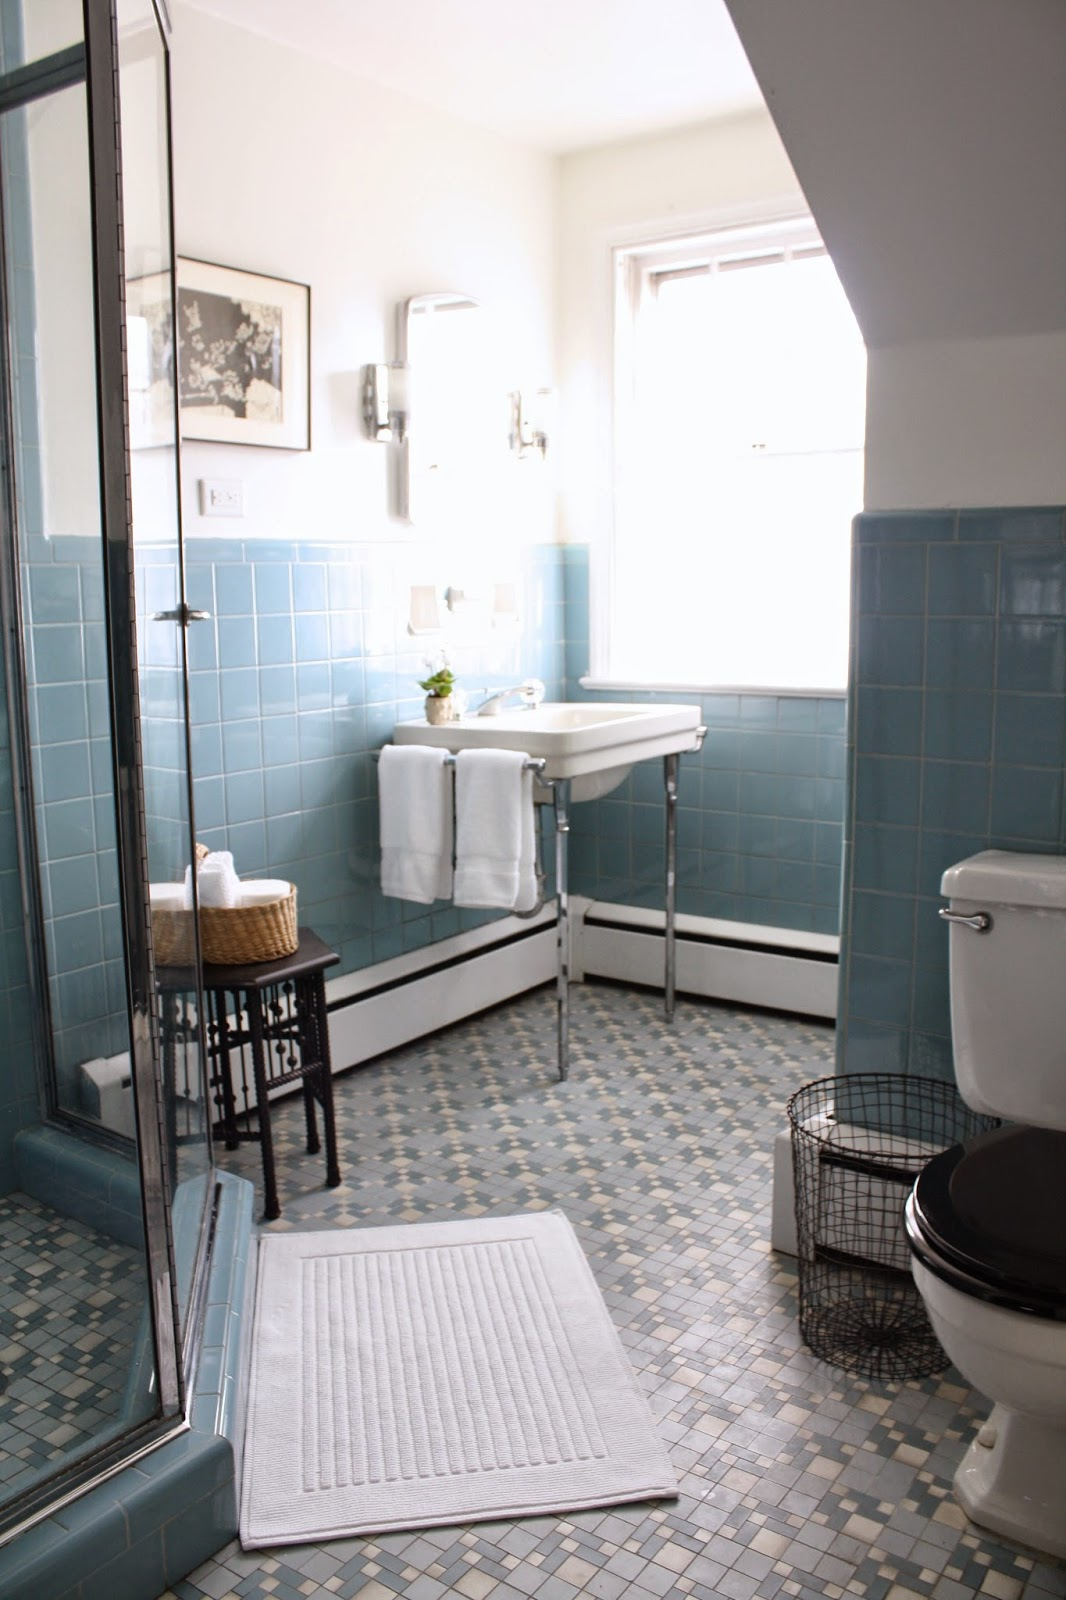 33 amazing pictures and ideas of old fashioned bathroom ... on Bathroom Tile Designs  id=44565